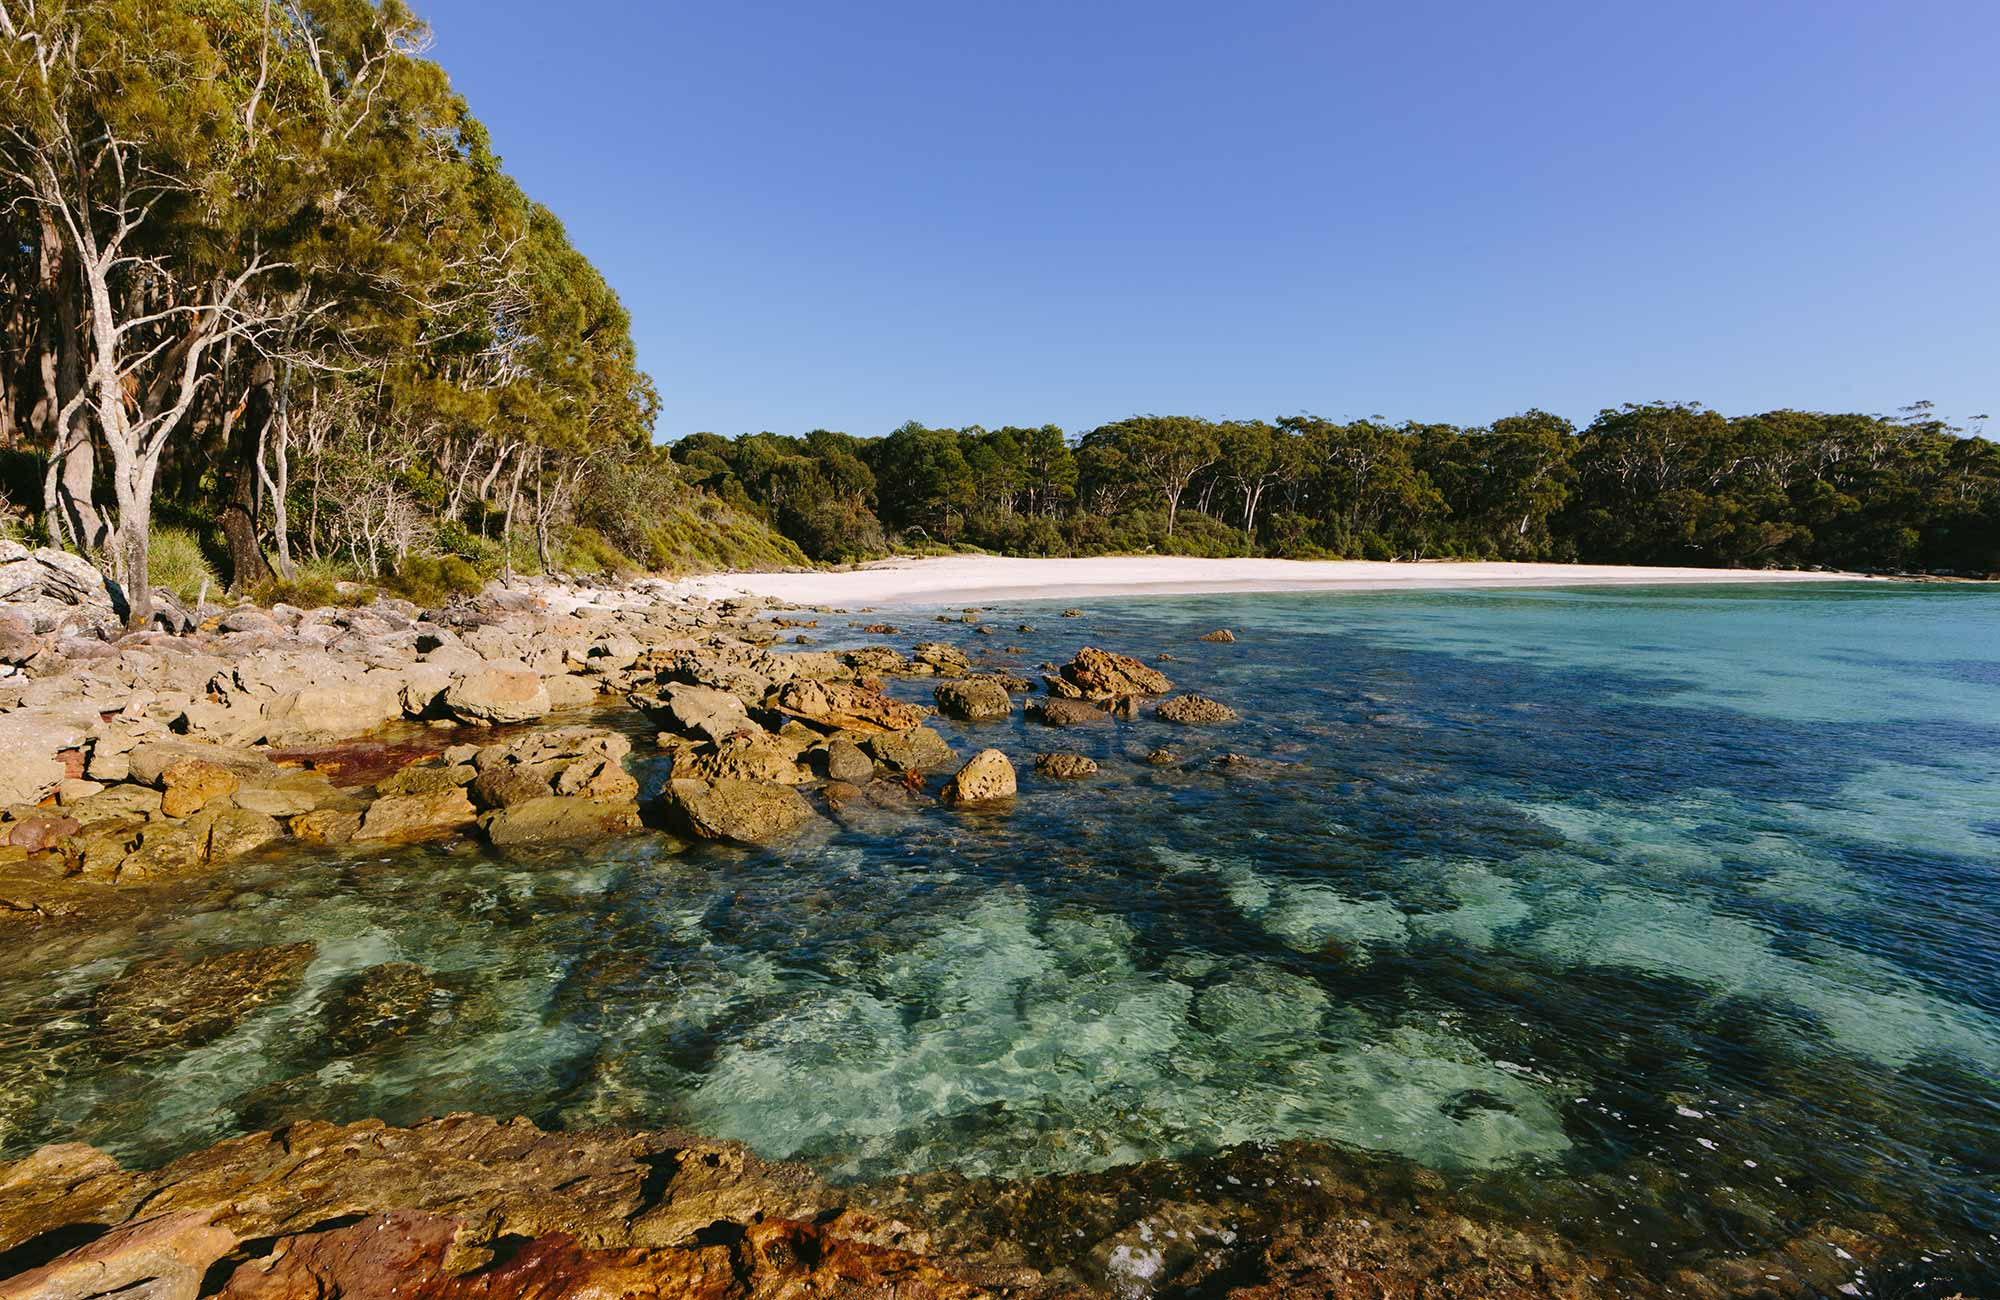 Jervis Bay National Park. Photo: David Finnegan